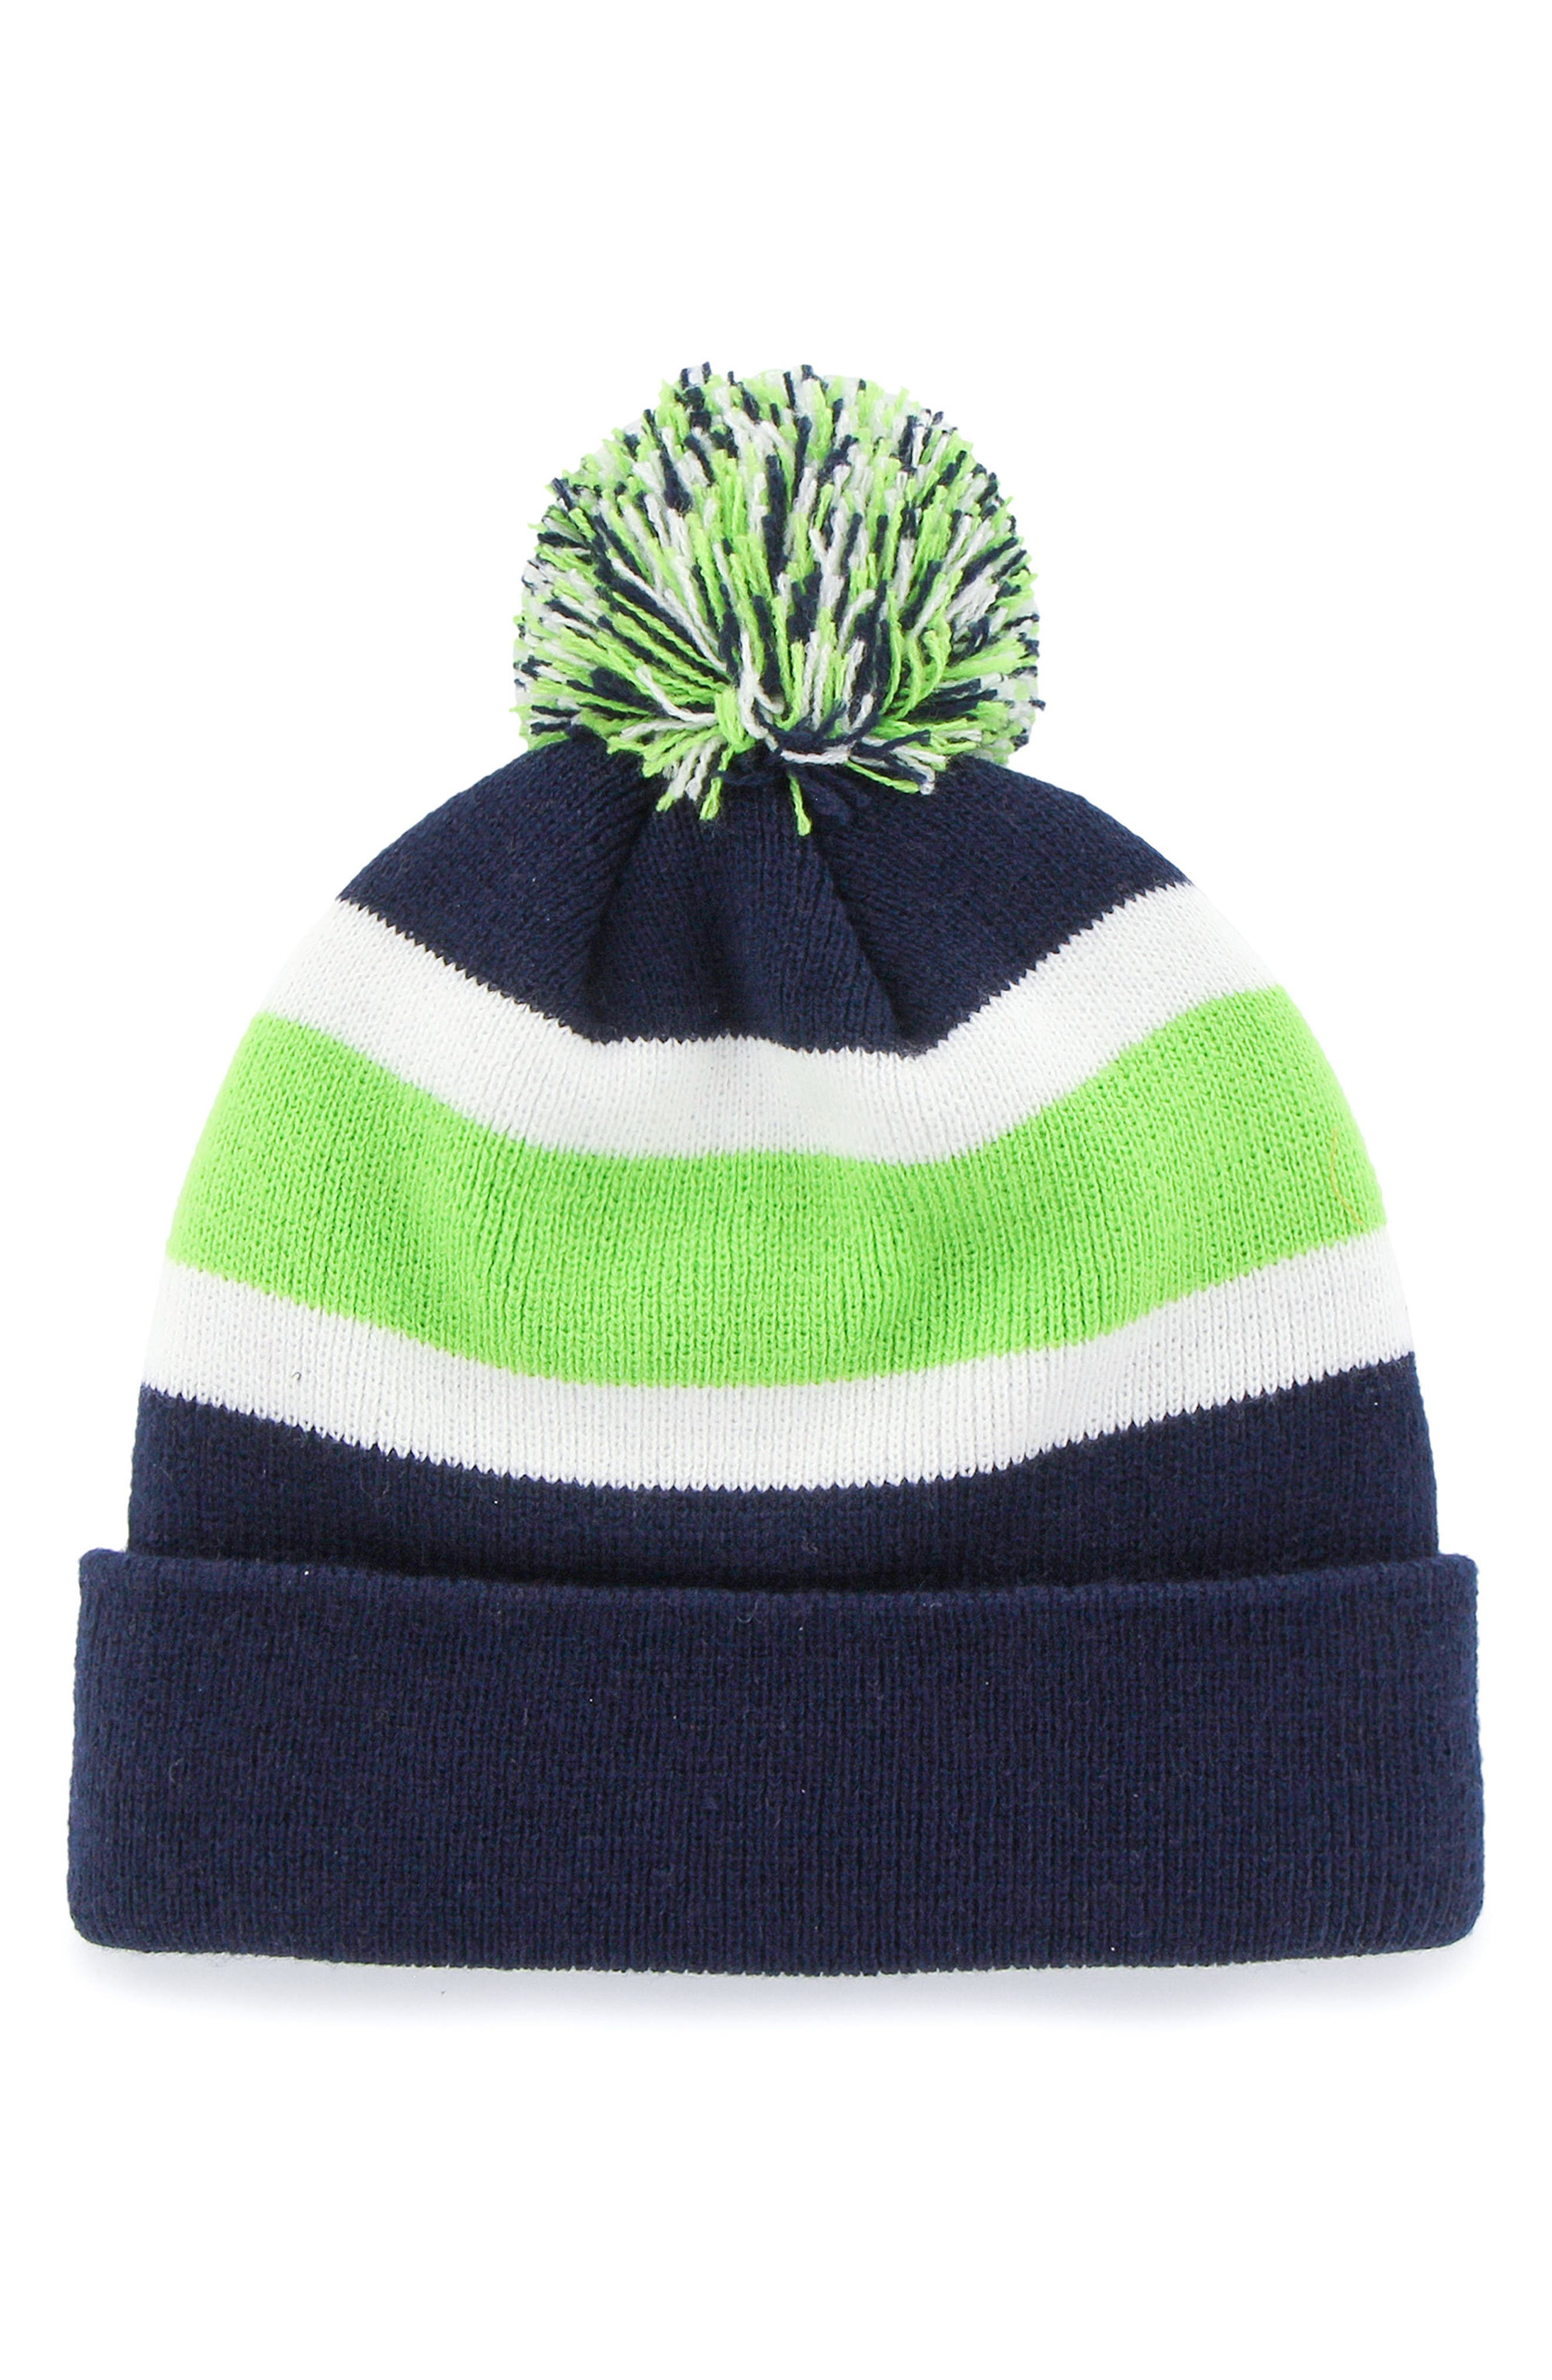 NFL Breakaway Knit Cap,                             Alternate thumbnail 11, color,